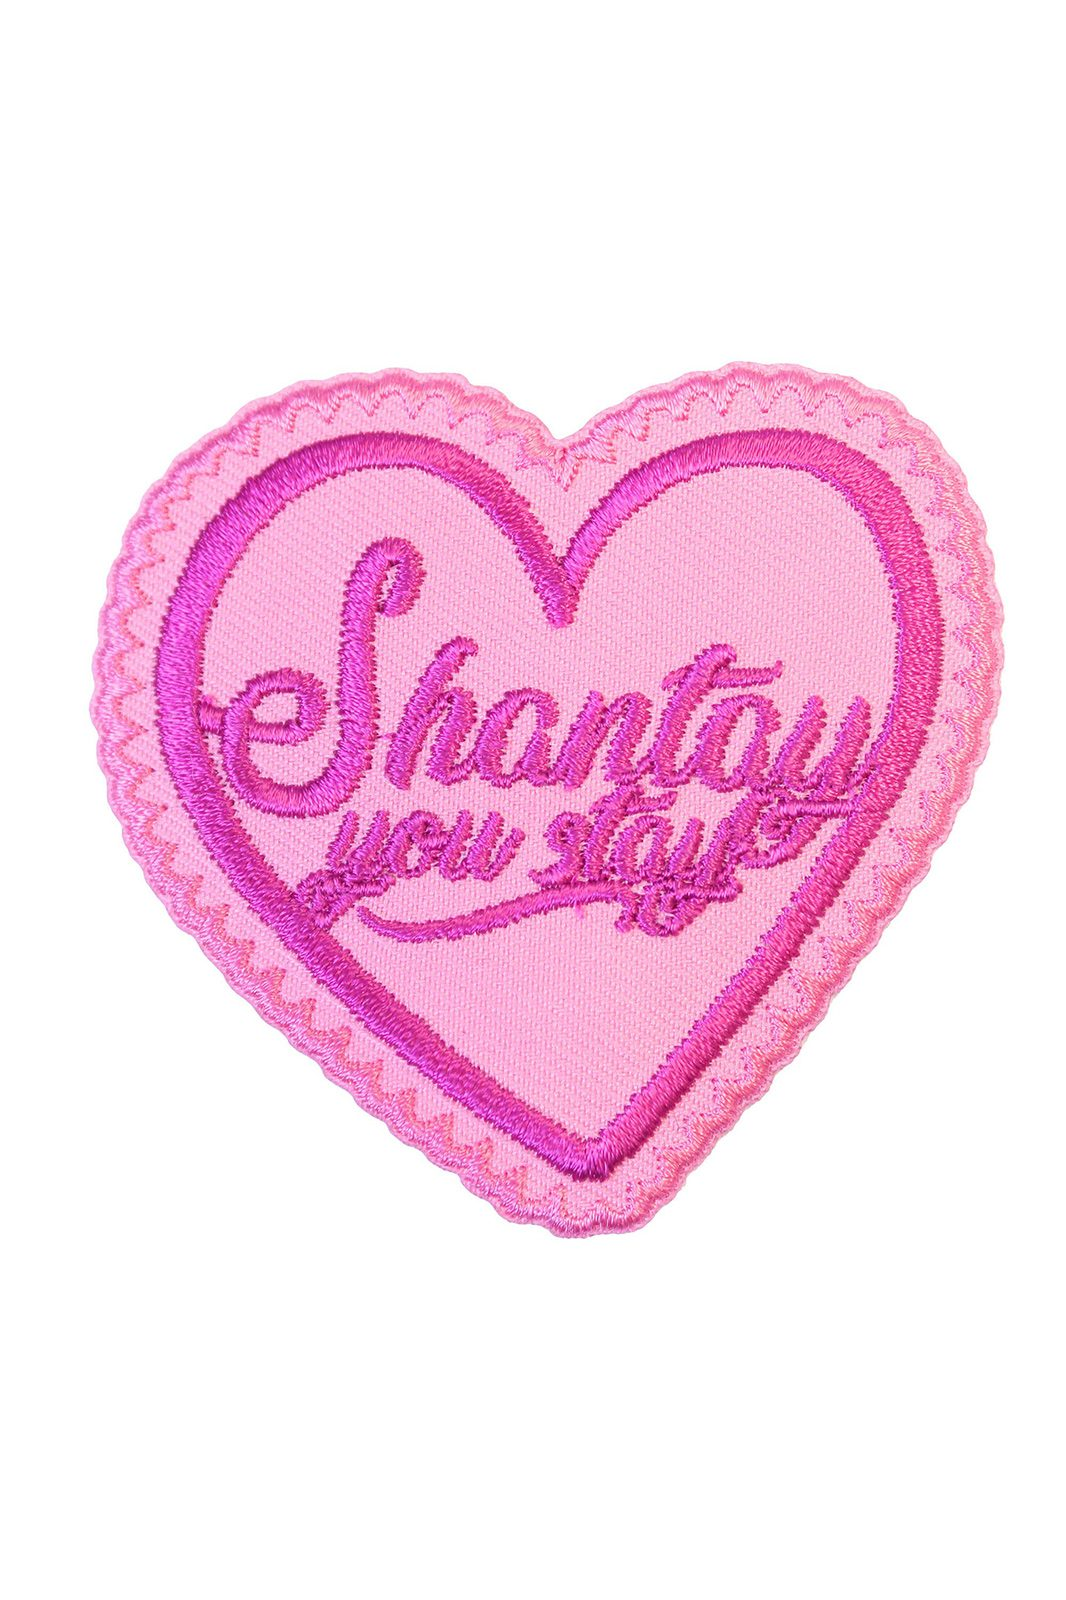 Shantay Your Stay Patch